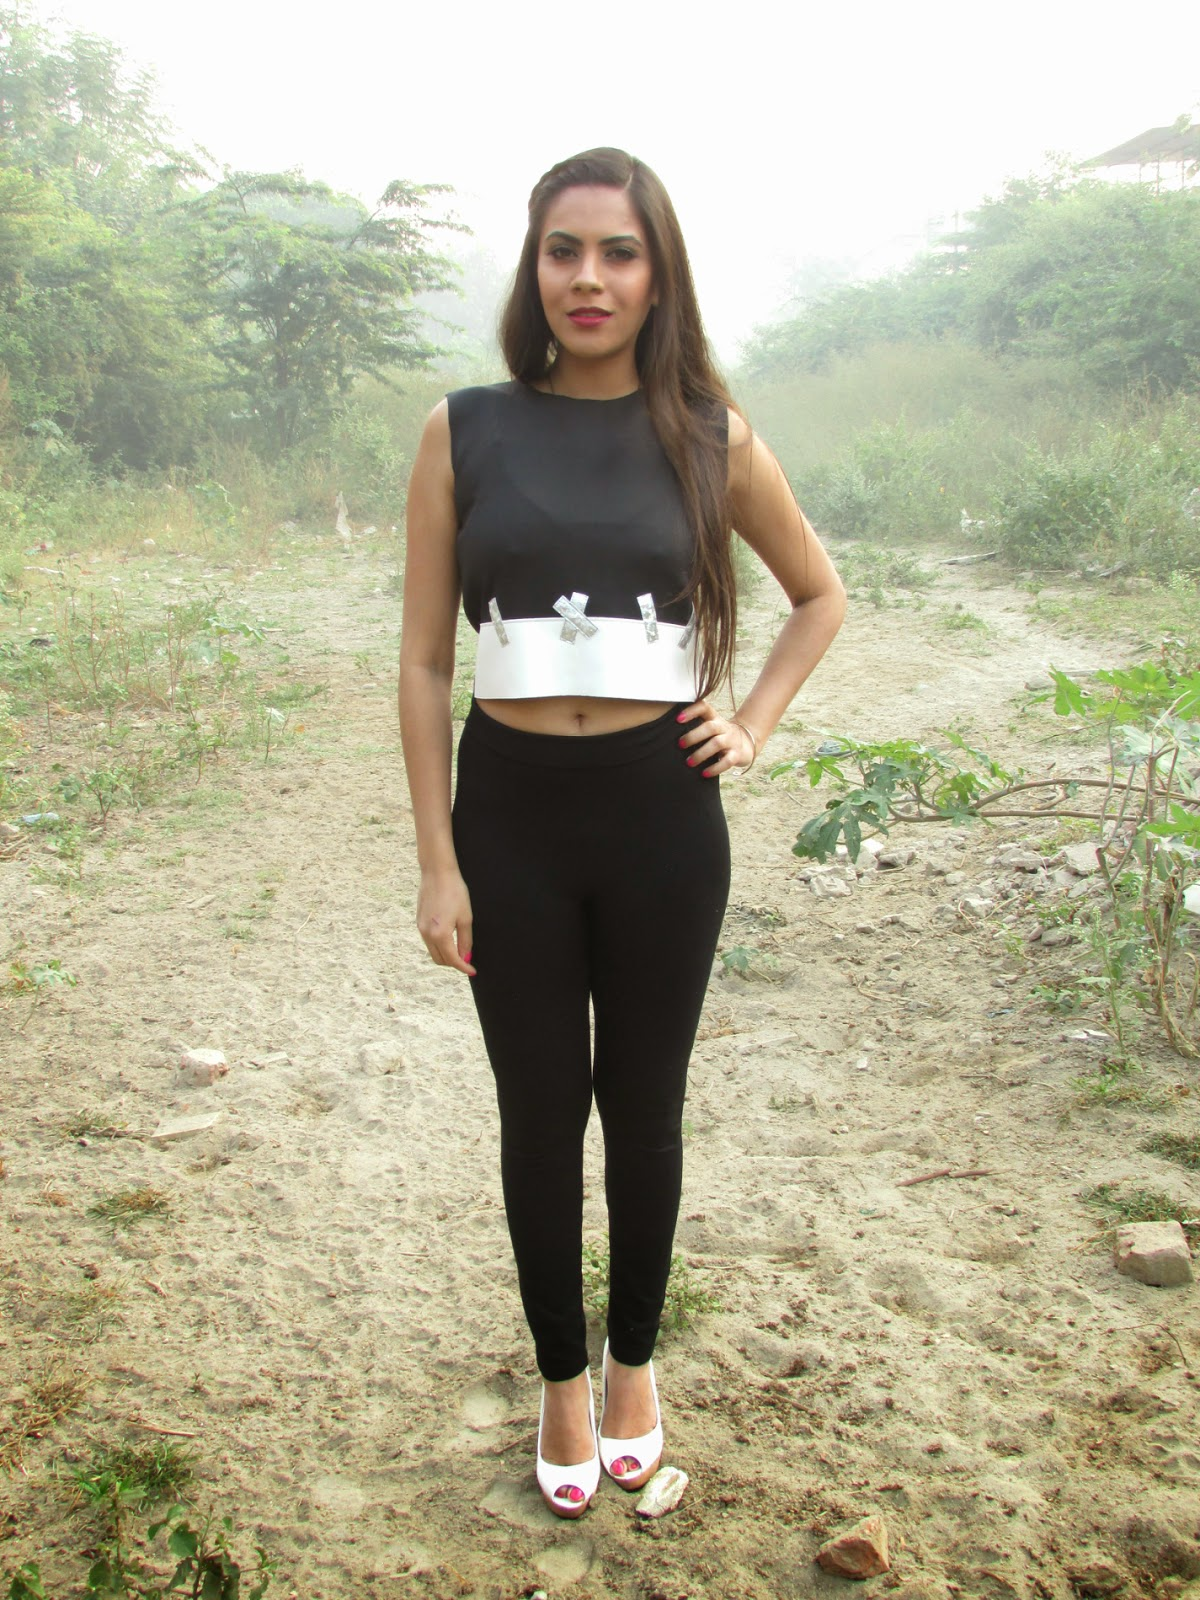 crop top, black white crop top, monochromatic crop top, how to style crop top , how to wear crop top, cheap crop top, cheap crop top online, cheap crop top india, crop to india, crop top online india, front row shop , front row shop crop top, crop top front row shop,t-shirt , slogan tshirt , tshirt , tee, slogan tee , diamonds , girls and diamonds , diamond tshirt , big diamond, big diamonfd for girls, indian , indian beauty blogger , indian fashion blogger , indian fashion , indian beauty , indian blog , indian fashion blog , blogger, hindi slogan tshirts, funny slogan tshirts, cute slogan tshirts, Leopard, leopard print, leopard print coat, leopard print shoes, leopard print sweatshirt, leopard print loafers, leopard print shirt, leopard print top, leopard print trench coat, leopard print leggings, leopard print heels, leopard print pumps, leopard print wallet, leopard print bag, leopard print sling bag , leopard print furry coat, leopard print sweater, leopard print pullover, leopard print cardigan, leopard shoes, leopard sweatshirt, leopard loafers, leopard shirt, leopard top, leopard trench coat, leopard leggings, leopard heels, leopard pumps, leopard wallet, leopard bag, leopard sling bag , leopard furry coat, leopard sweater, leopard pullover, leopard cardigan, front row shop leopard print shoes, front row shop leopard print sweatshirt, front row shop leopard print loafers, front row shop front row shop leopard print shirt, front row shop leopard print top, front row shop leopard print trench coat, front row shop leopard print leggings, front row shop leopard print heels, front row shop leopard print pumps, front row shop leopard print wallet, front row shop leopard print bag, front row shop leopard print sling bag ,front row shop leopard print furry coat, front row shop leopard print sweater, front row shop leopard print pullover, front row shop leopard print cardigan, Cheap leopard print shoes, Cheap leopard print sweatshirt, Cheap leopard print loafers, Ch